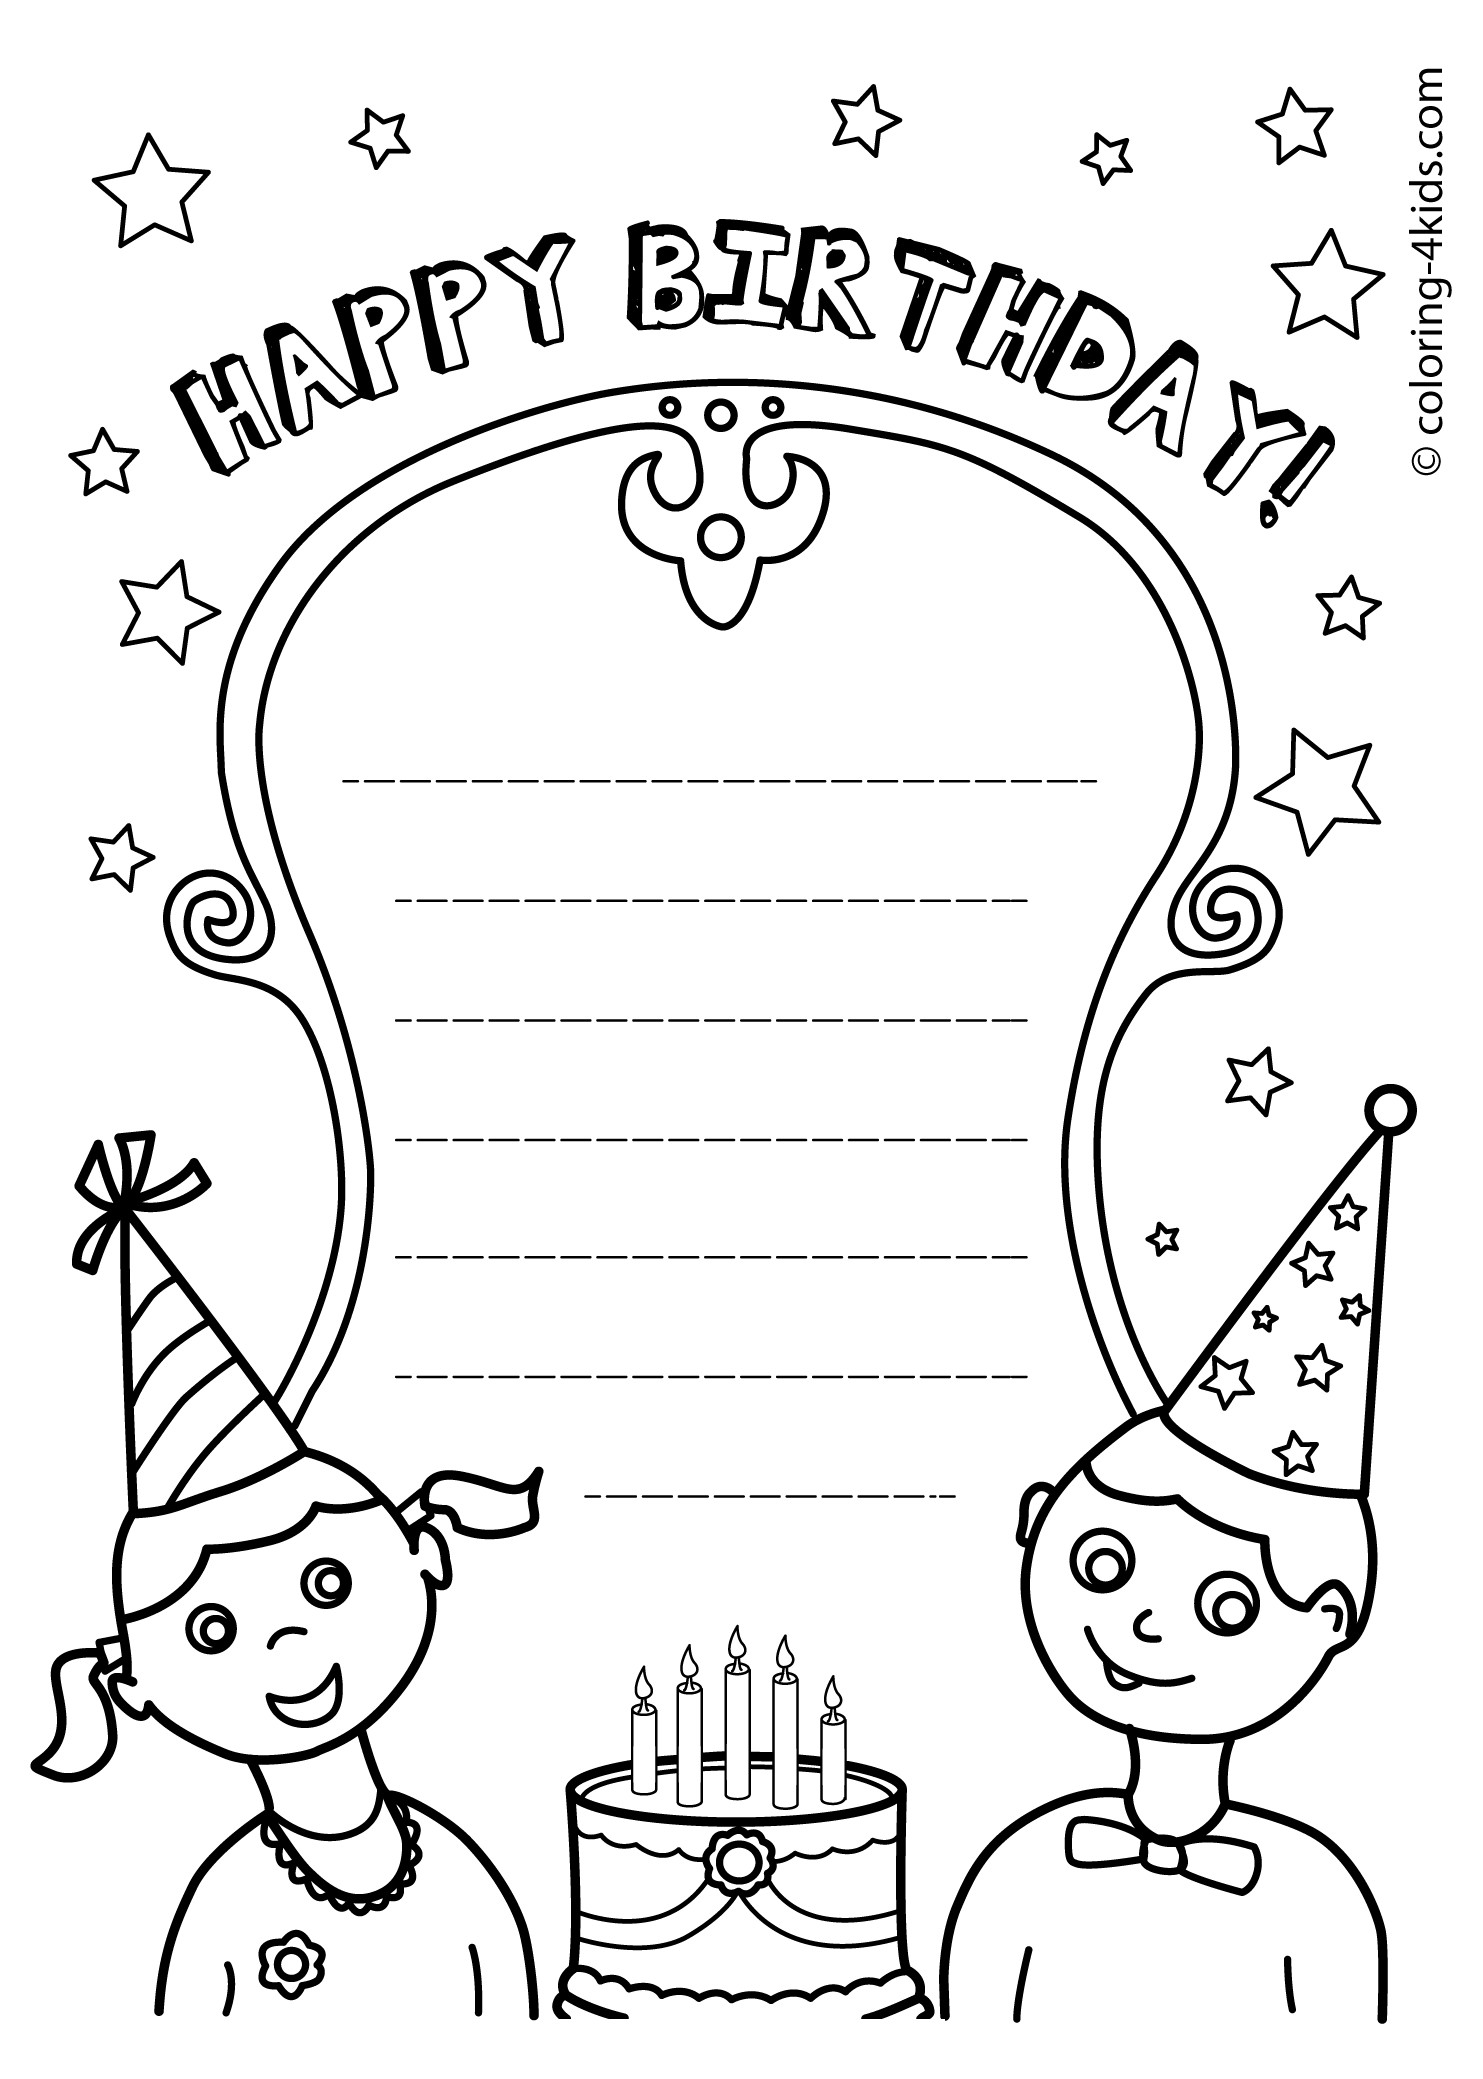 coloring printable birthday cards free birthday cards ideas drawing at getdrawings free download free coloring printable birthday cards